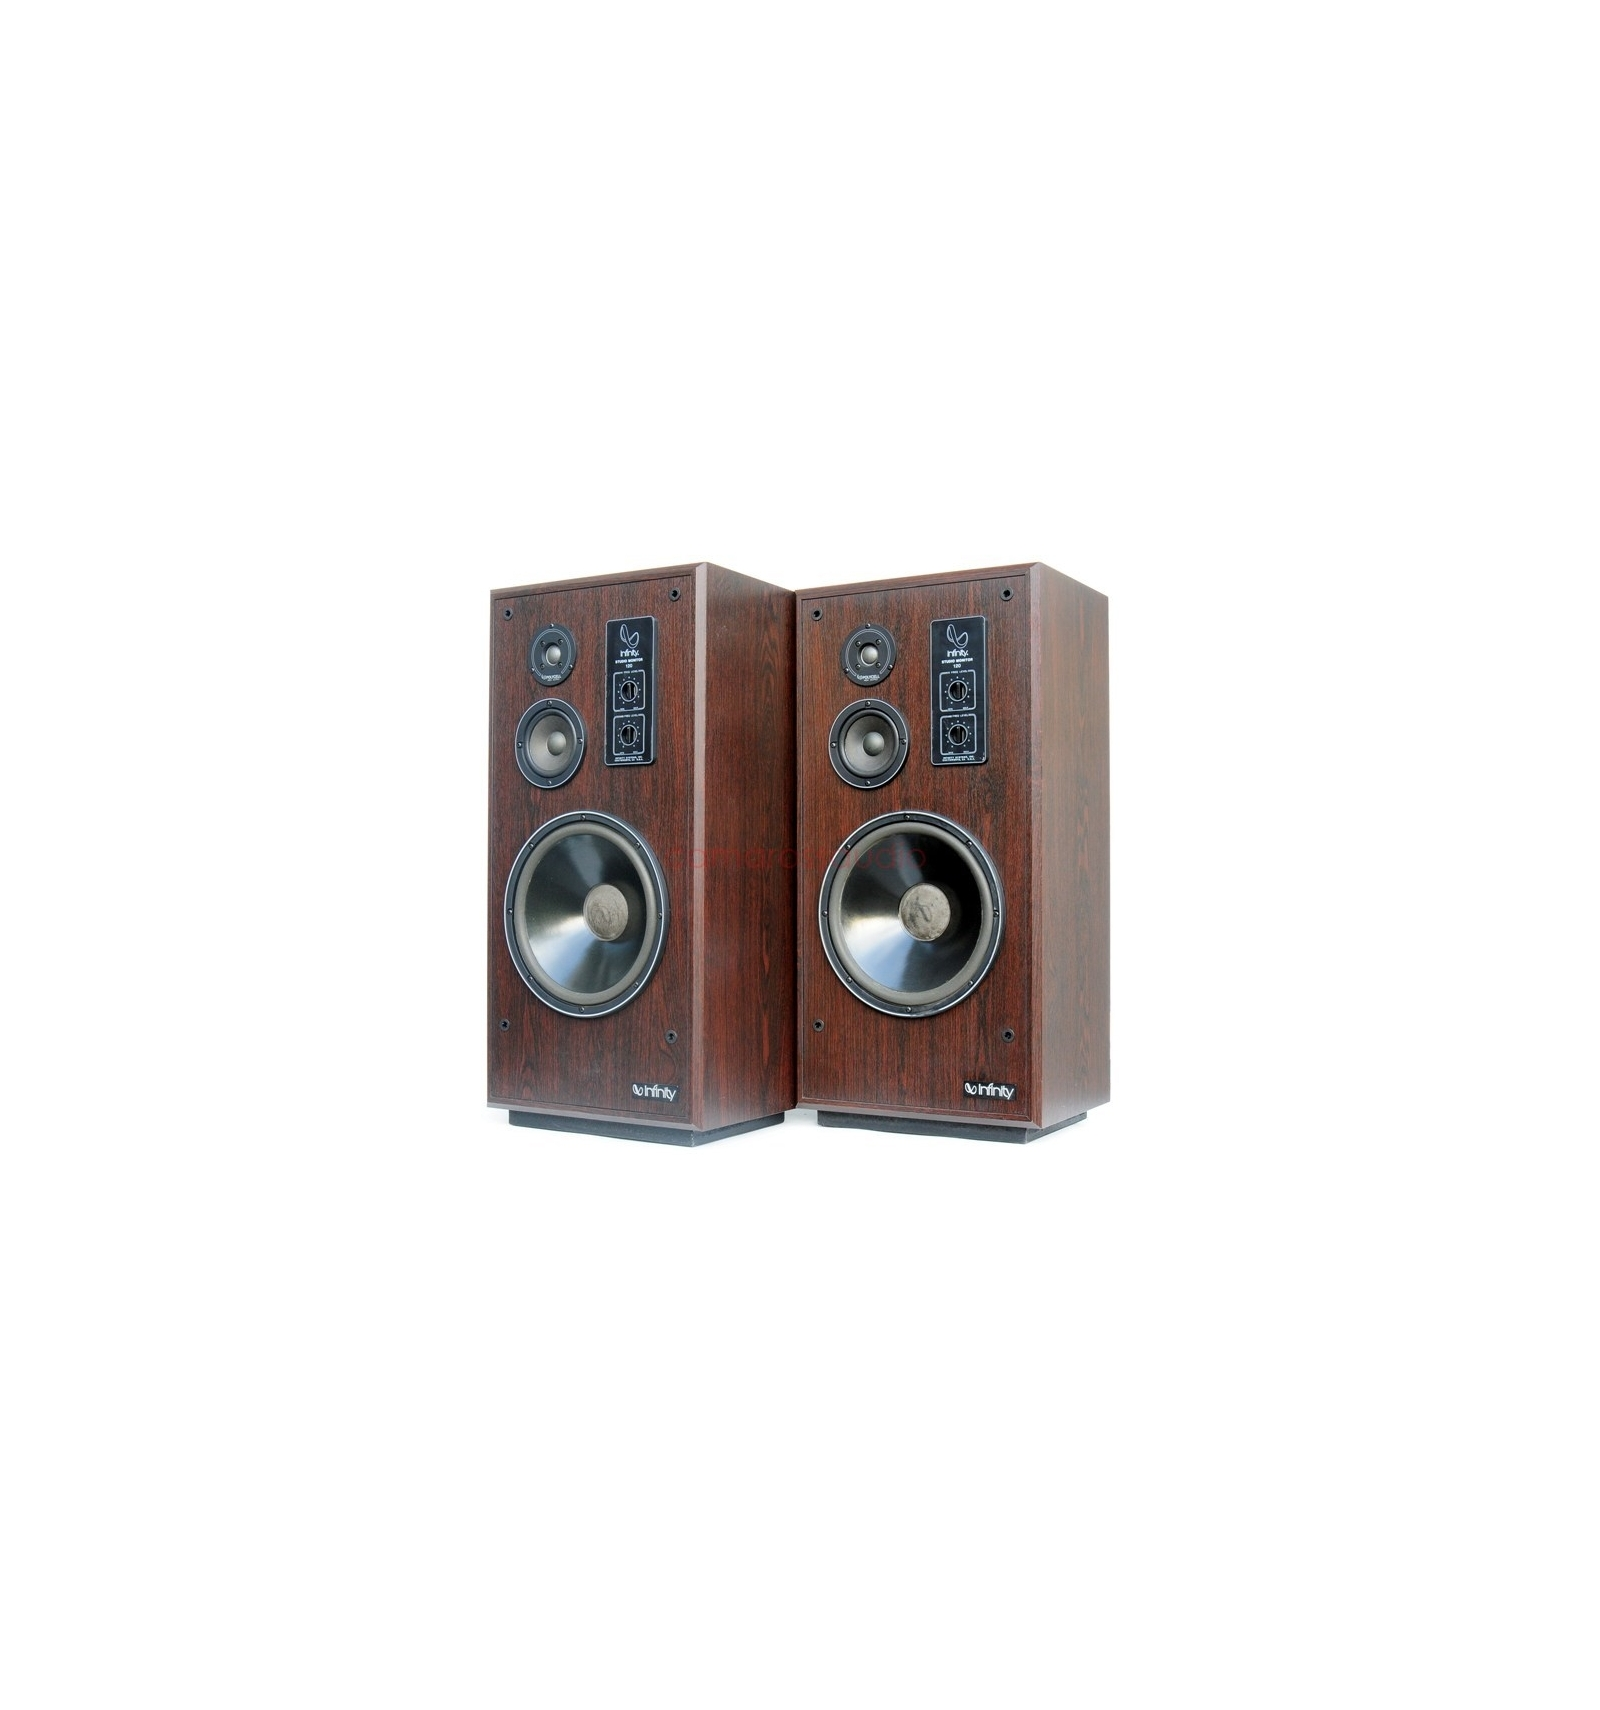 Infinity Sm 120 Studio Monitor Camaross Audio Hifi